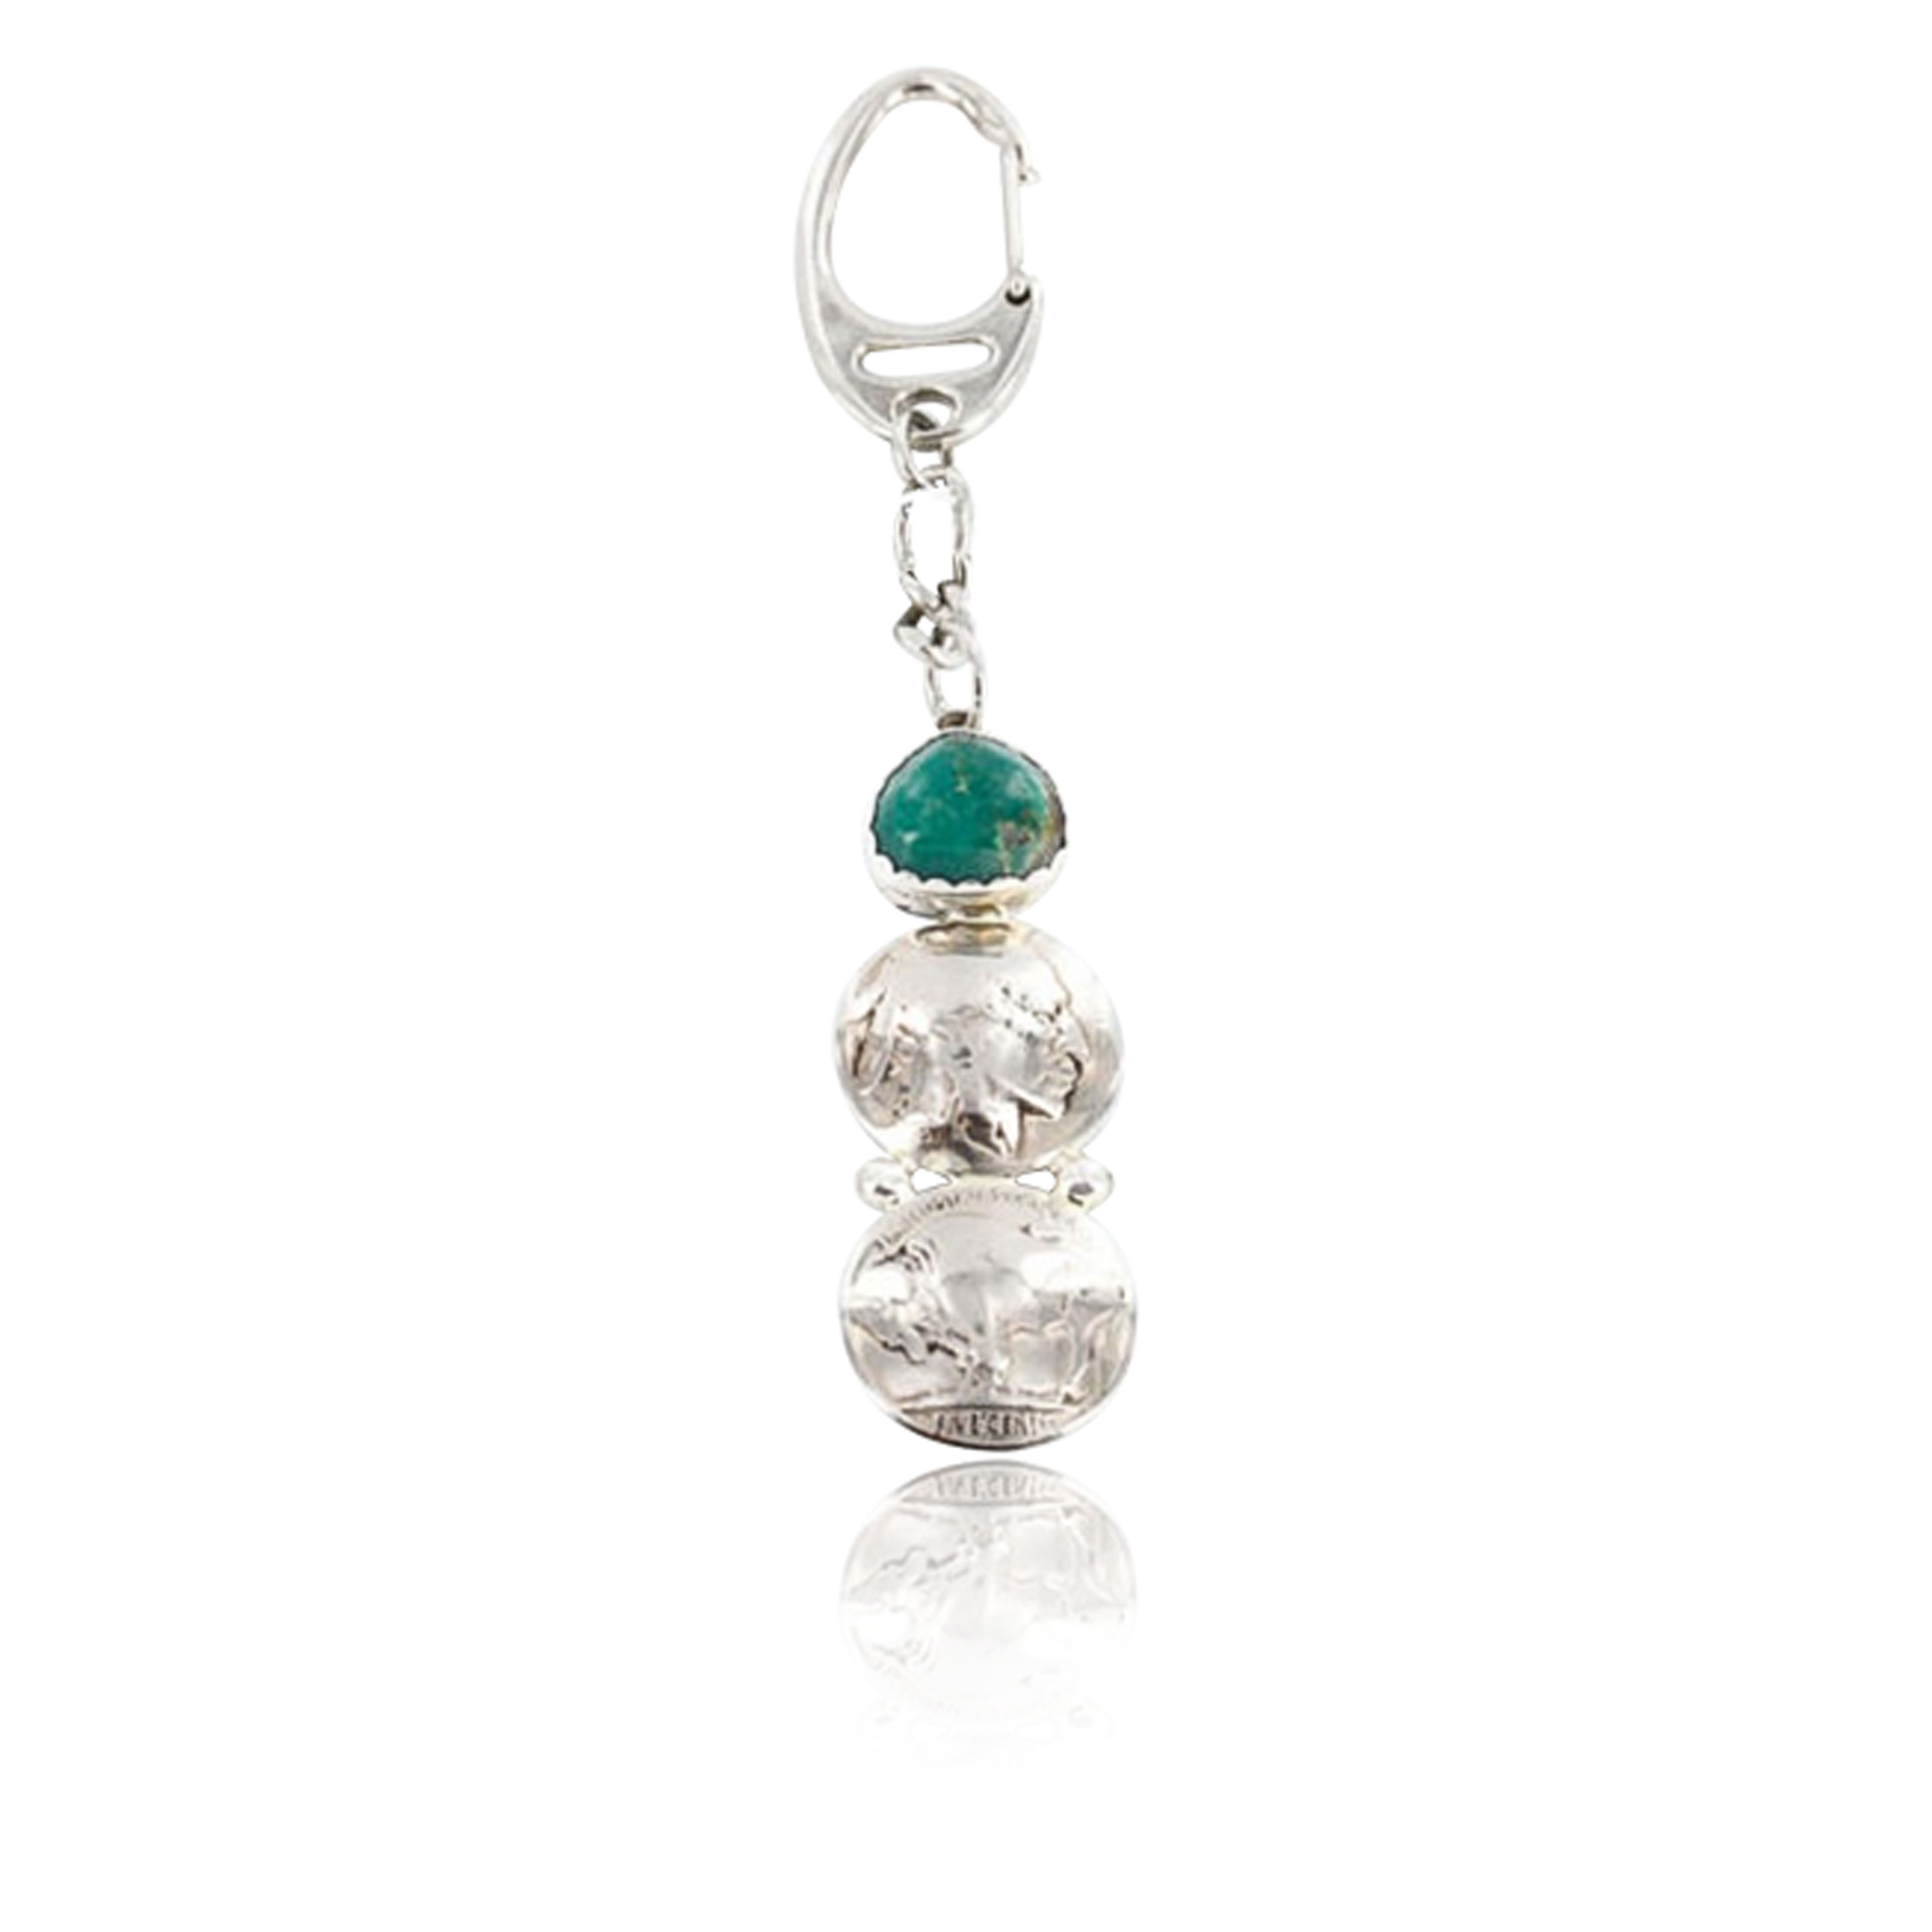 Vintage Style OLD Indian Head Certified Authentic Navajo .925 Sterling Silver Turquoise Native American Keychain 371051900789 All Products 371051900789 371051900789 (by LomaSiiva)